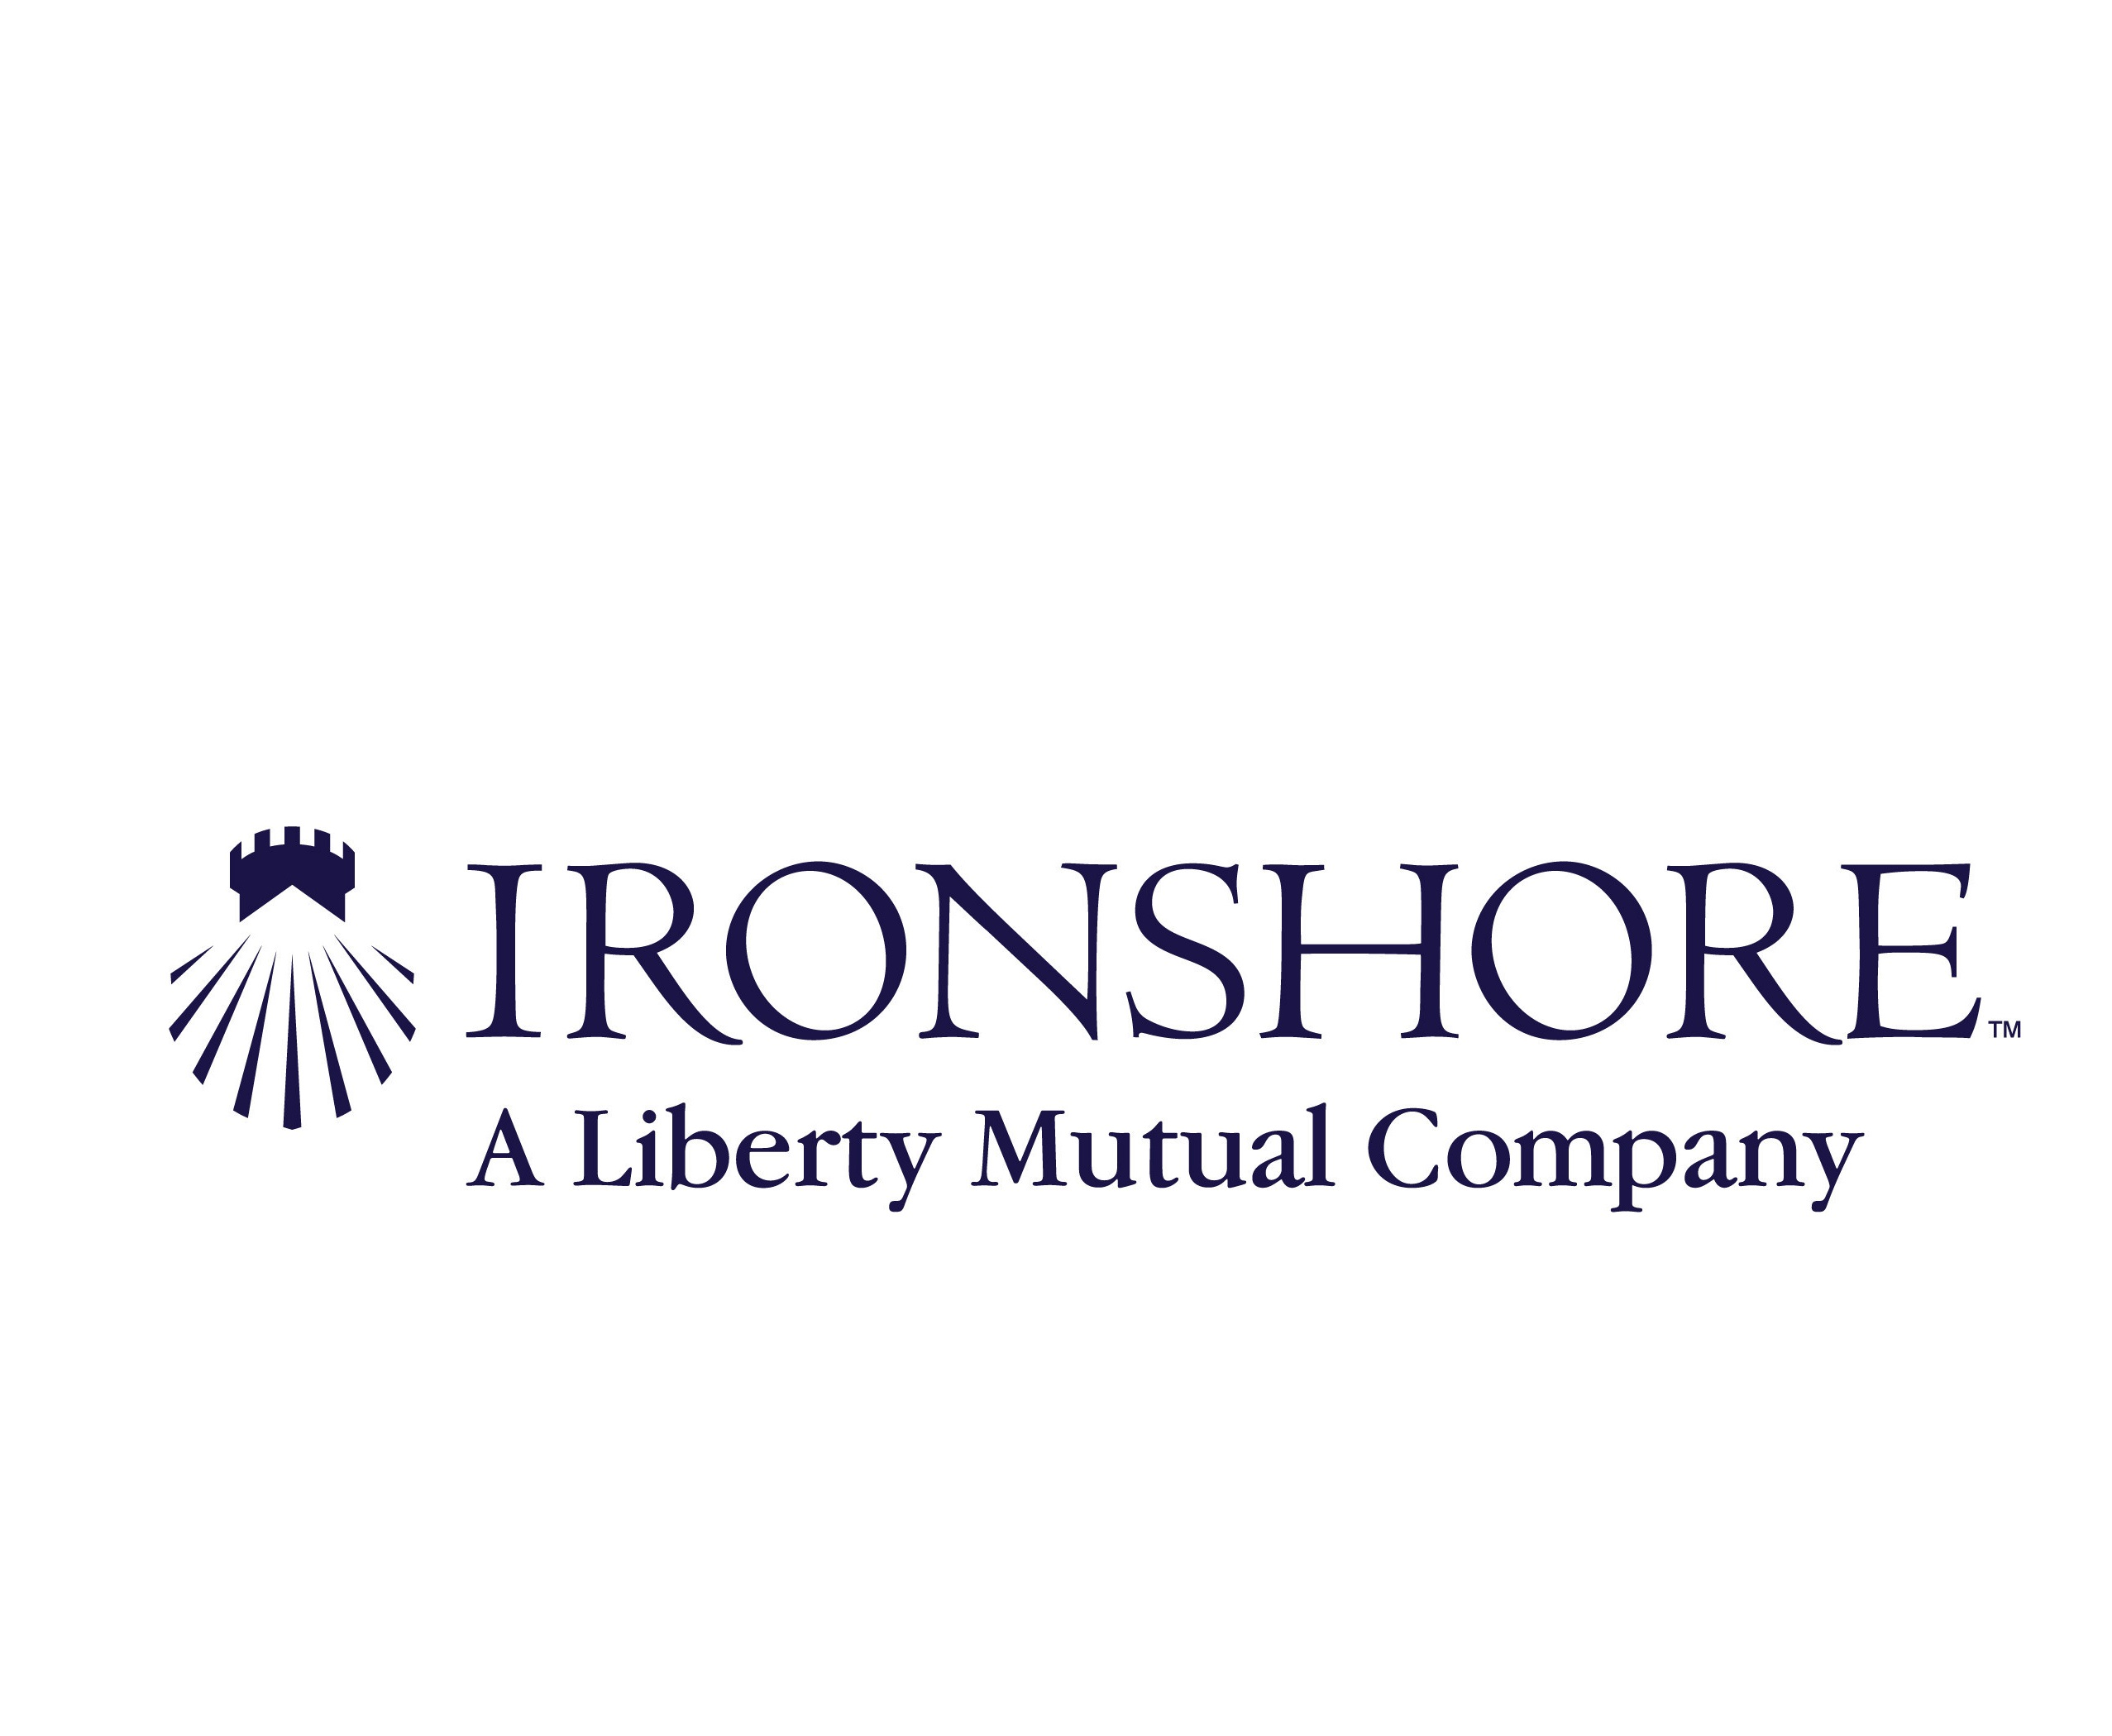 IronHealth Enters into Preferred Partnership with PeriGen to Advance Obstetrics AI Technology